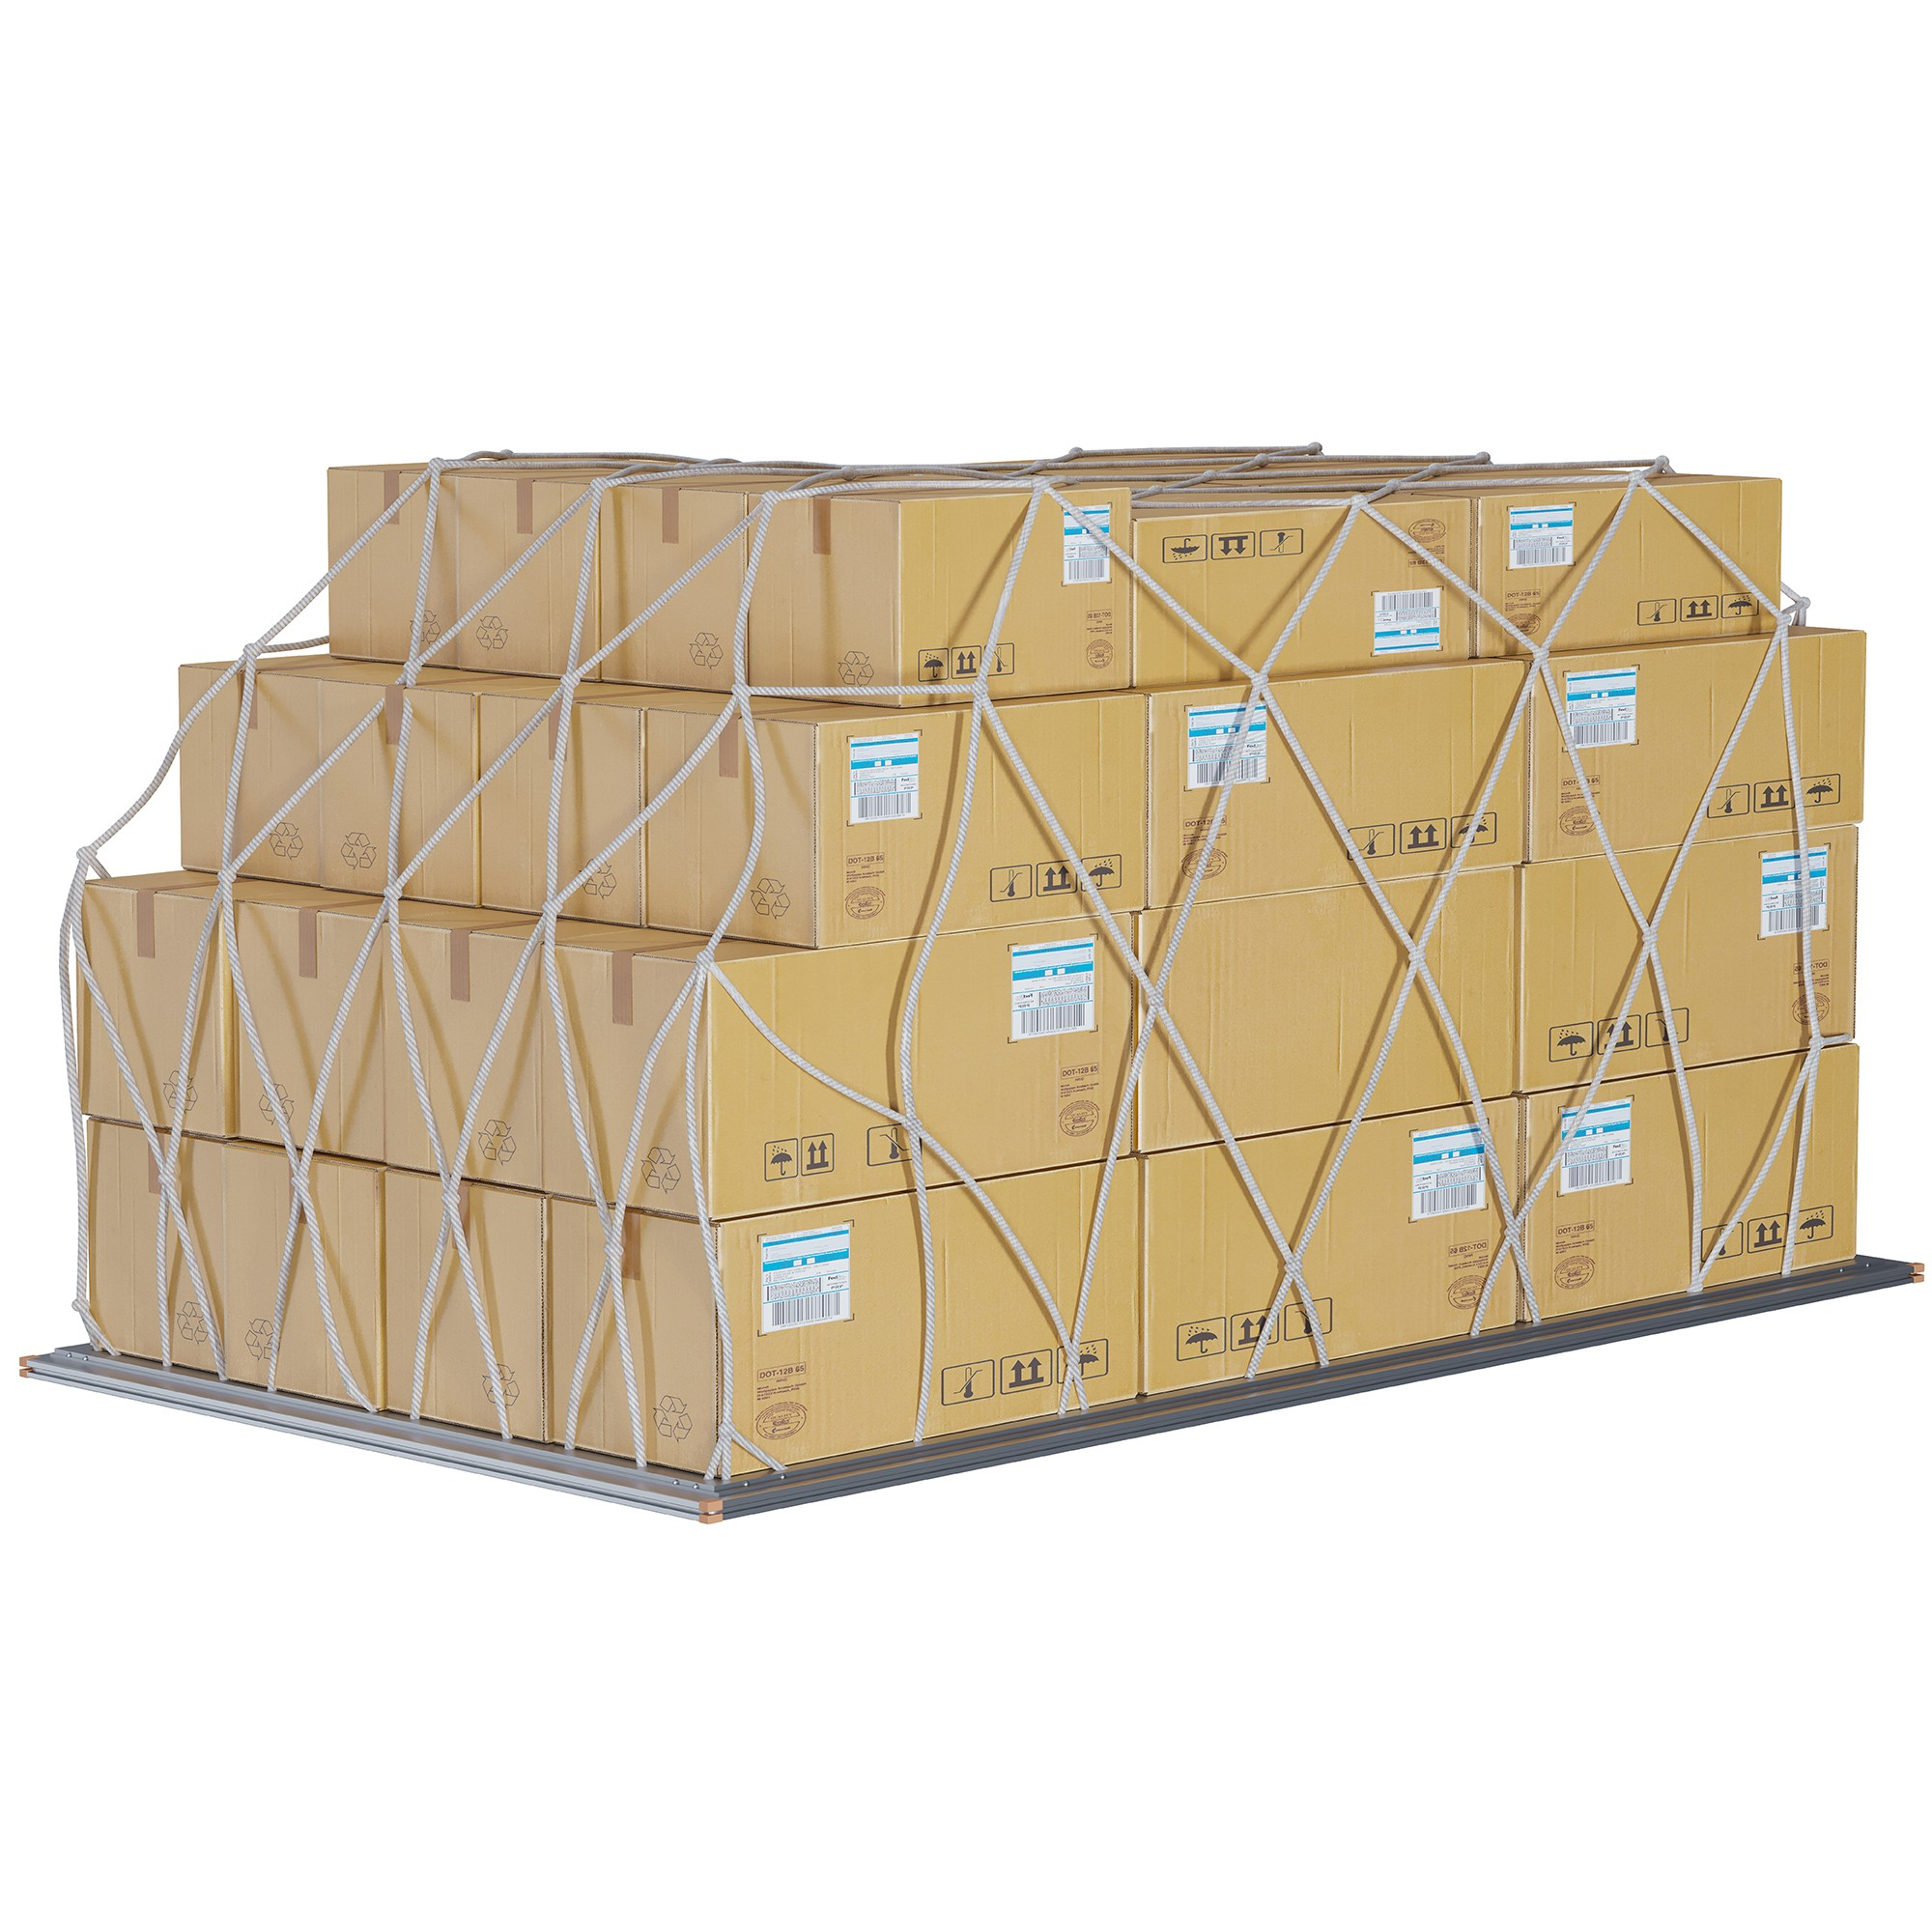 "TOTALPACK® 60.4 x 125 x 64"" Air Cargo Net 1 Unit"